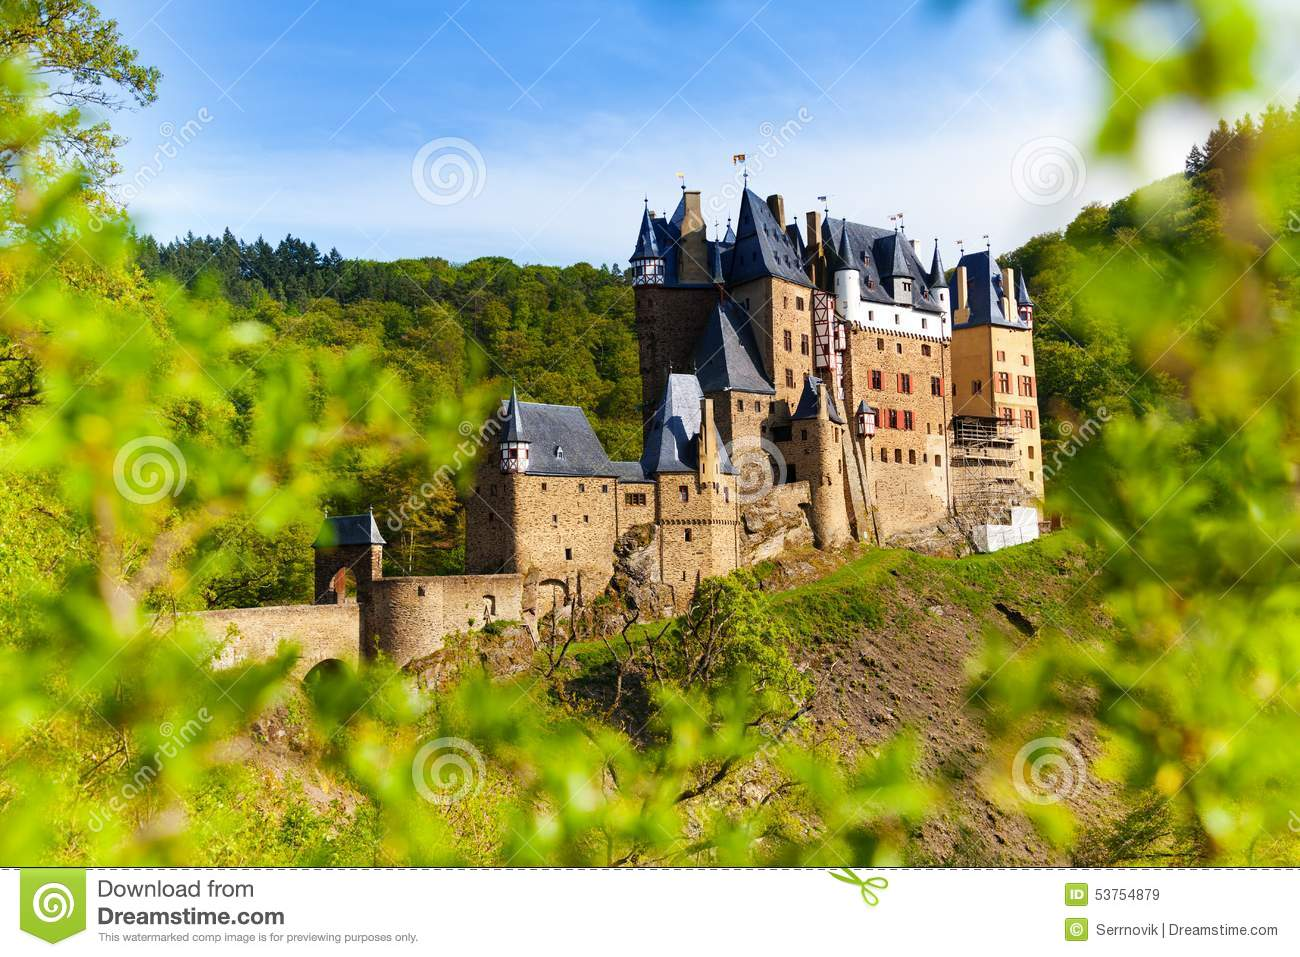 Eltz Castle In Germany From The Forest Stock Photo.